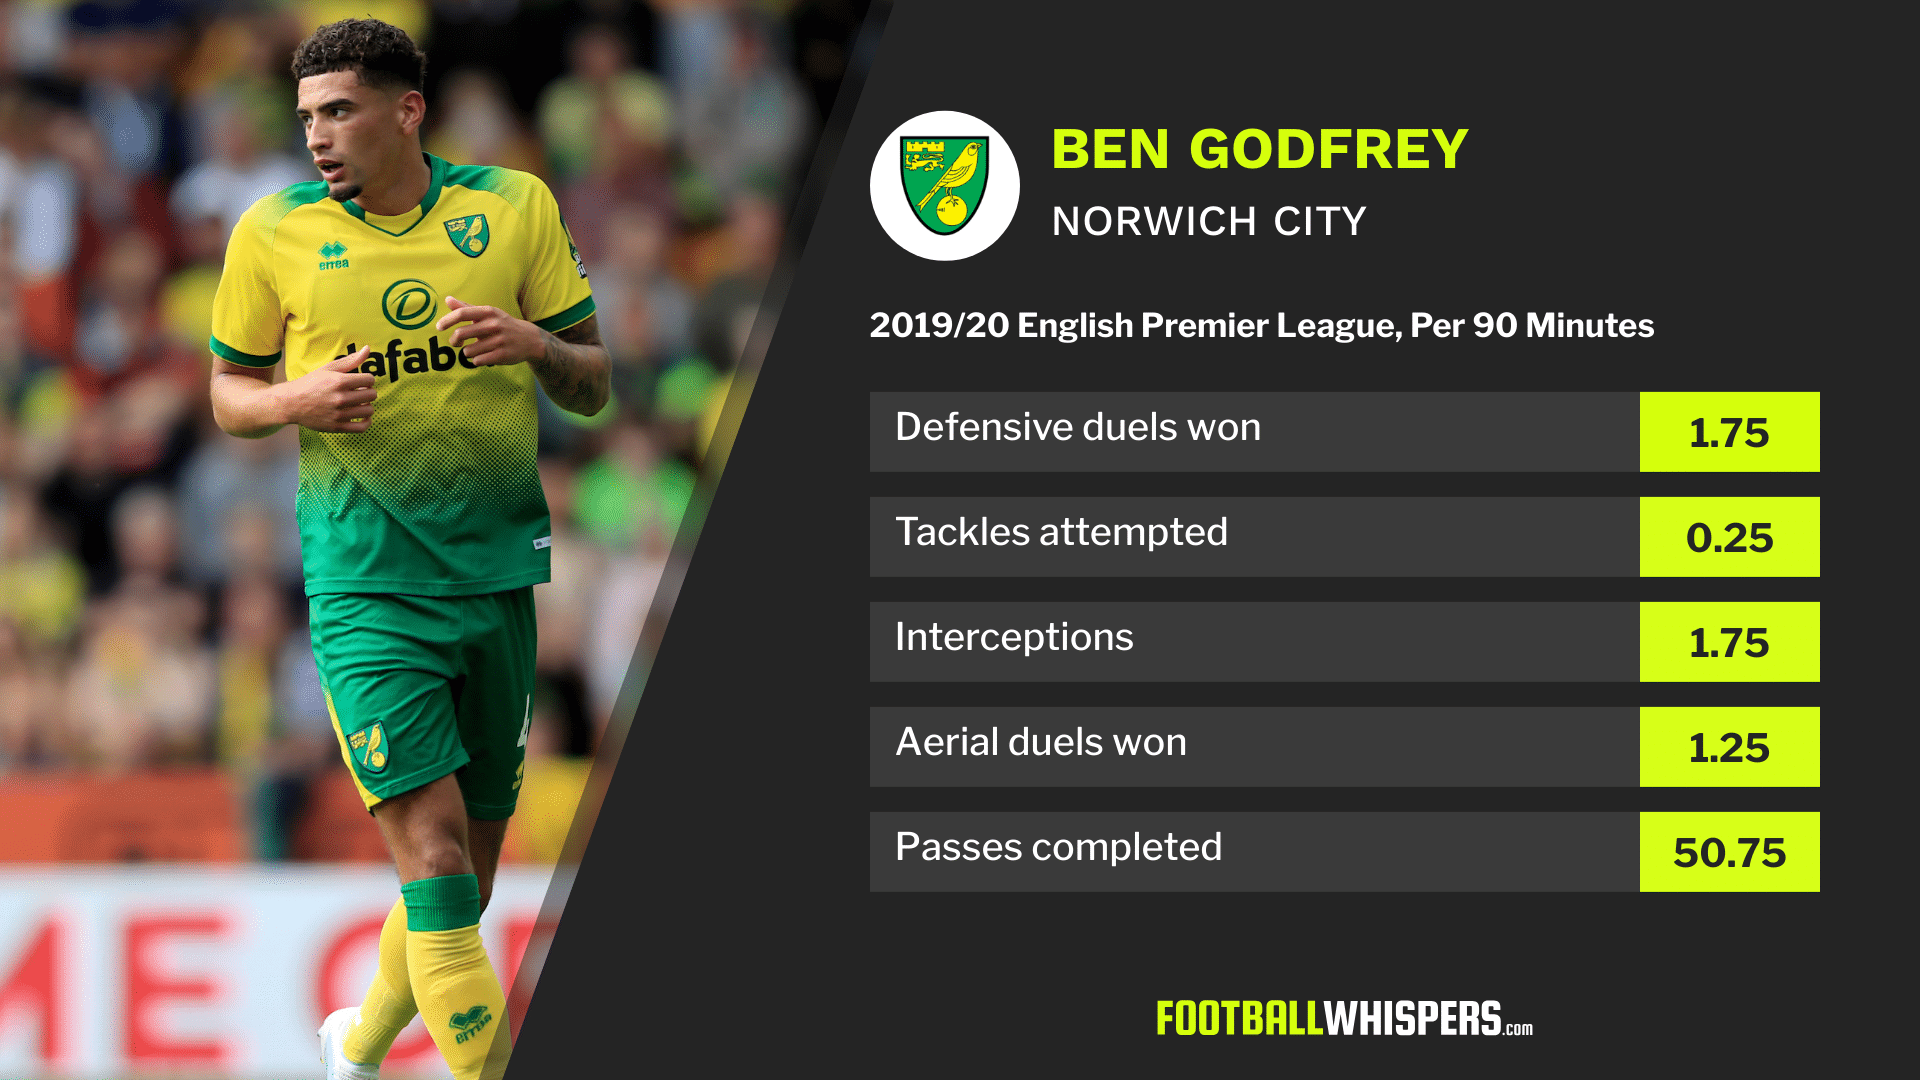 Defensive stats for Norwich City defender Ben Godfrey in 2019/20